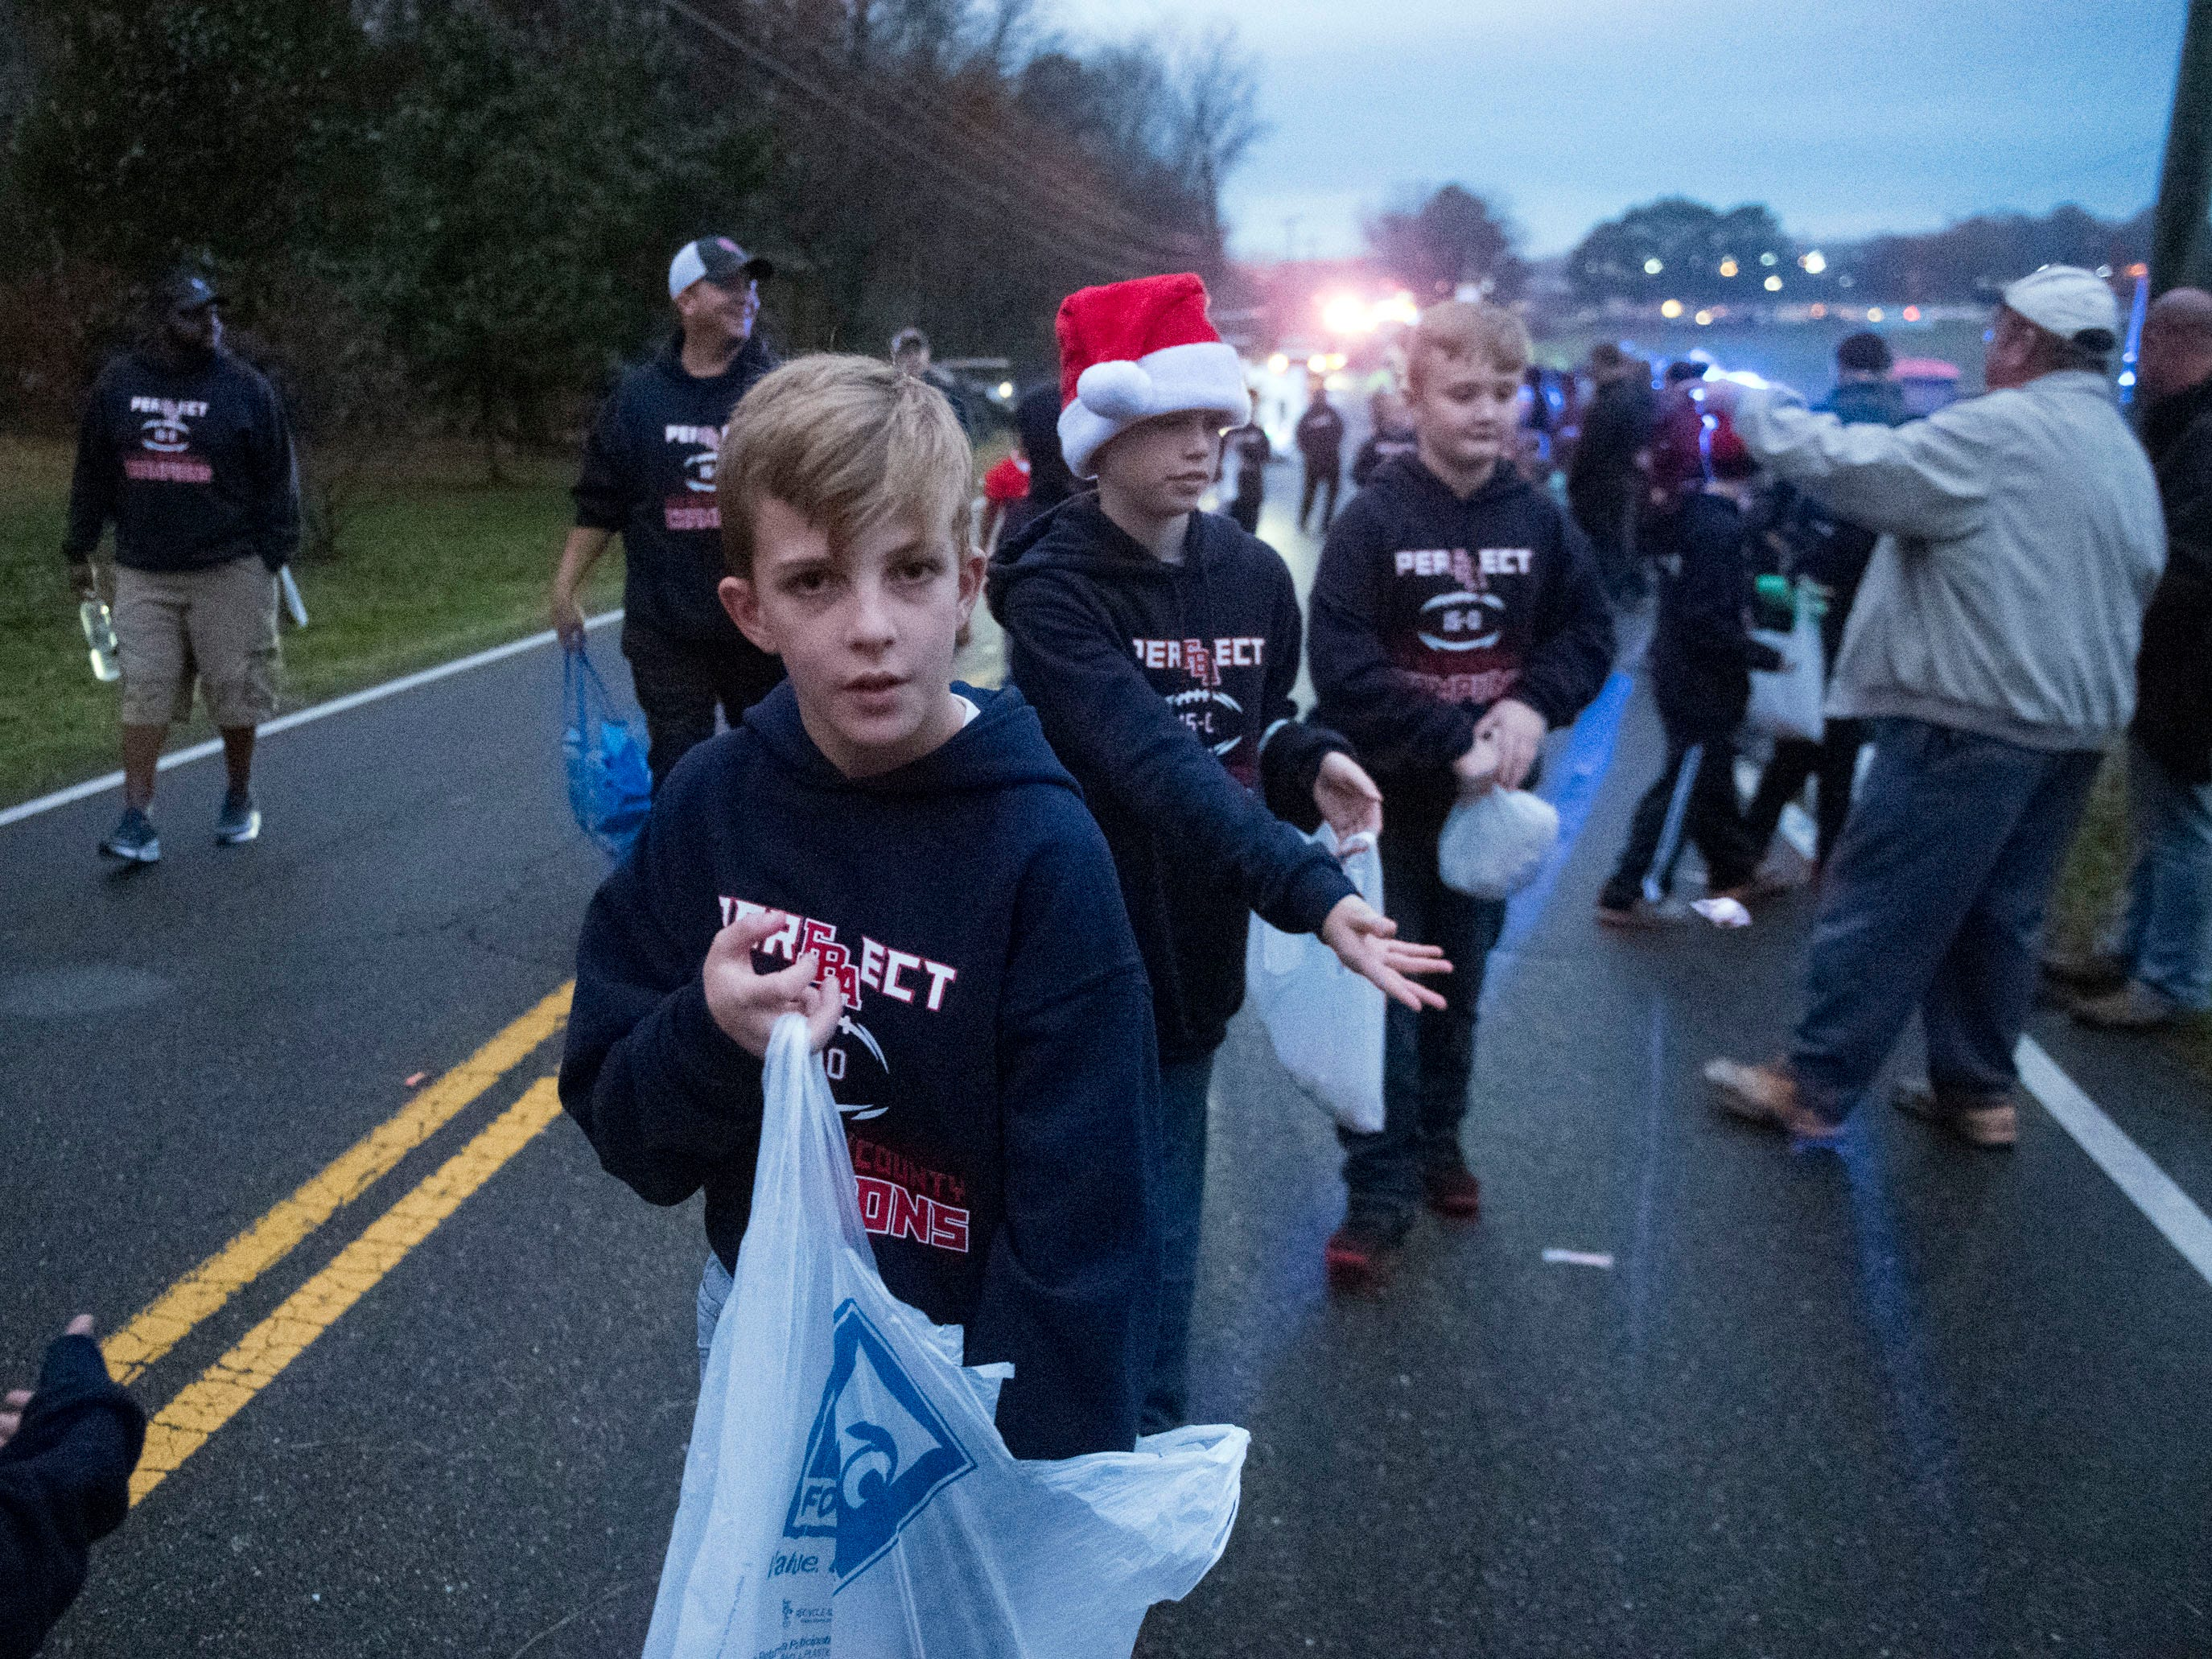 Parade participants hand out candy in the Powell Lions Club Christmas Parade on Saturday, December 1, 2018.